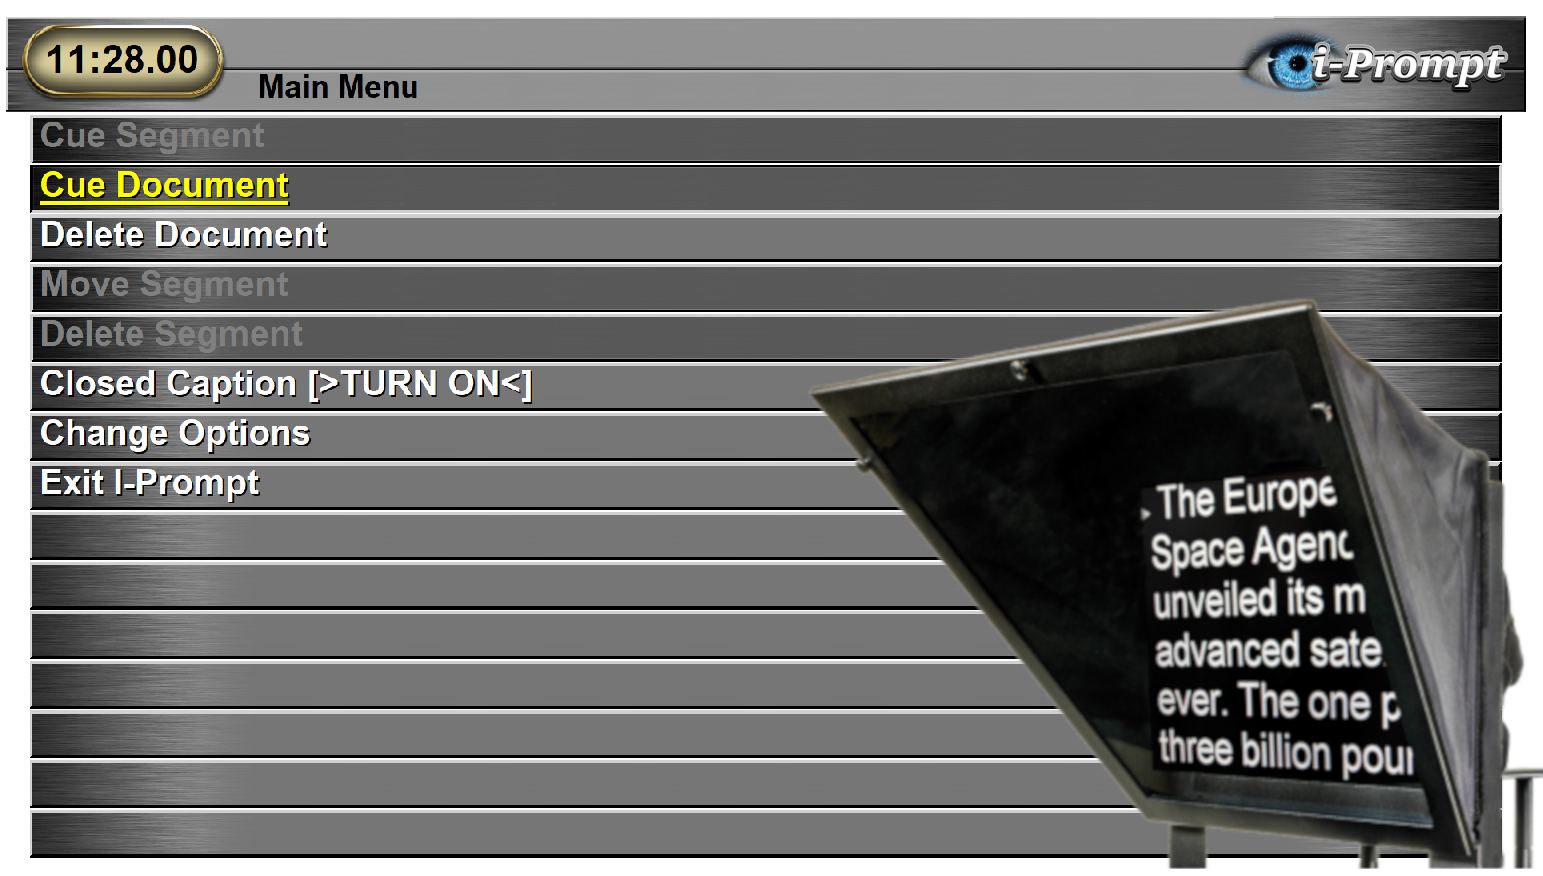 Teleprompter Menu